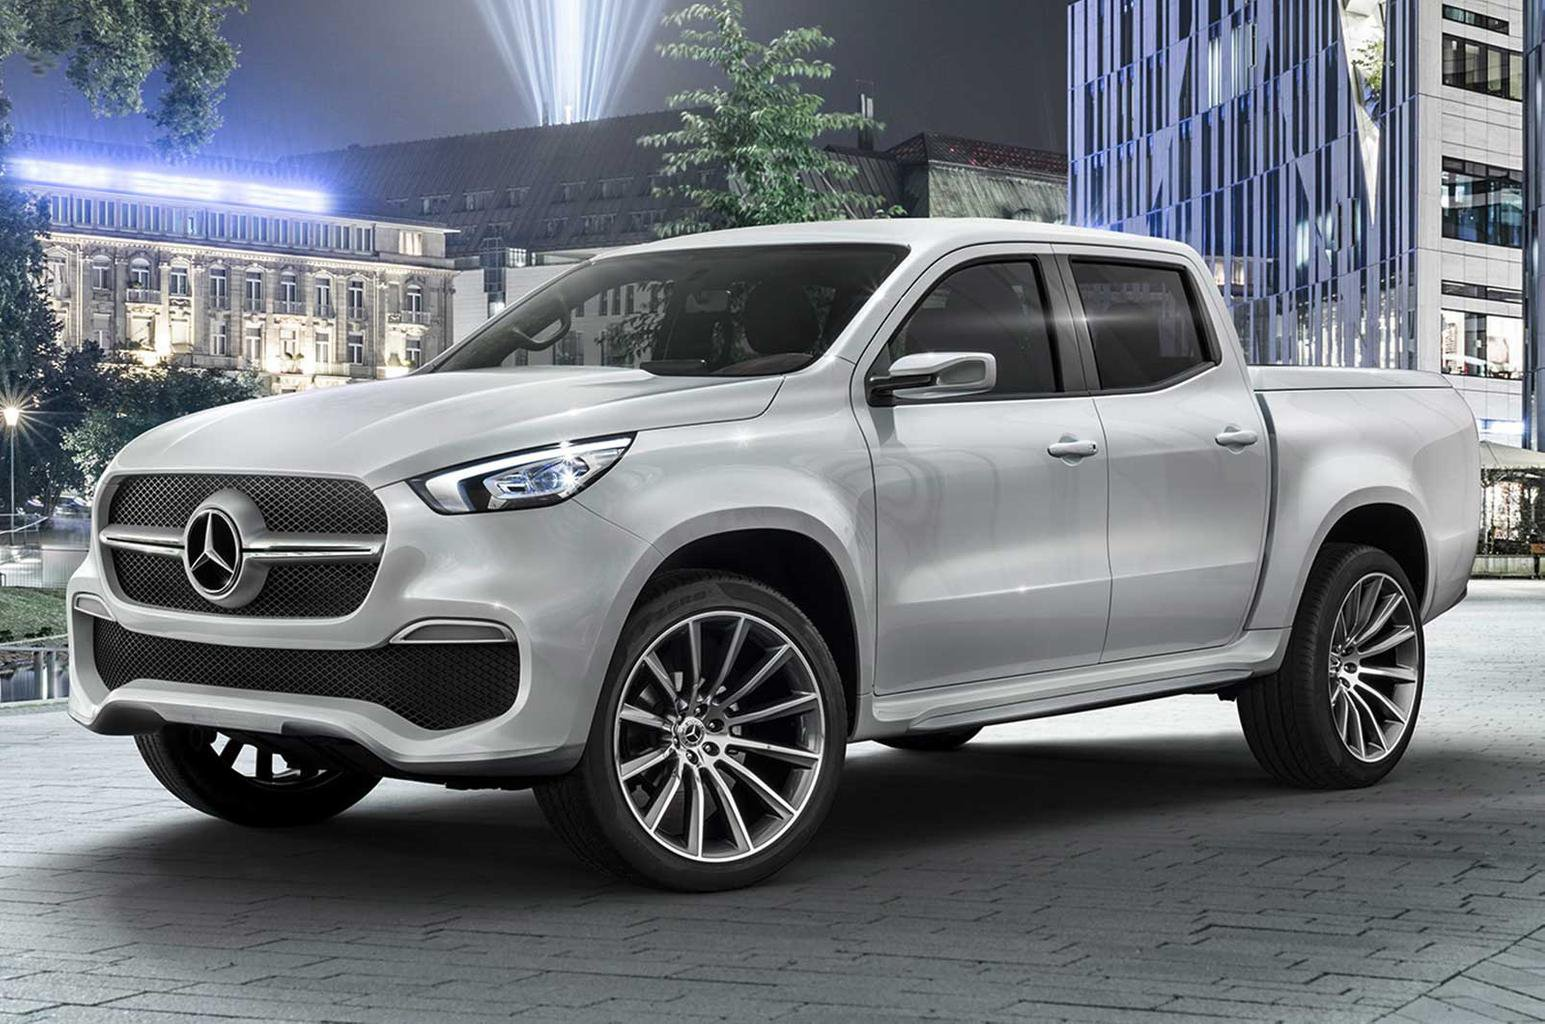 New Mercedes X-Class concept shows new pick-up truck